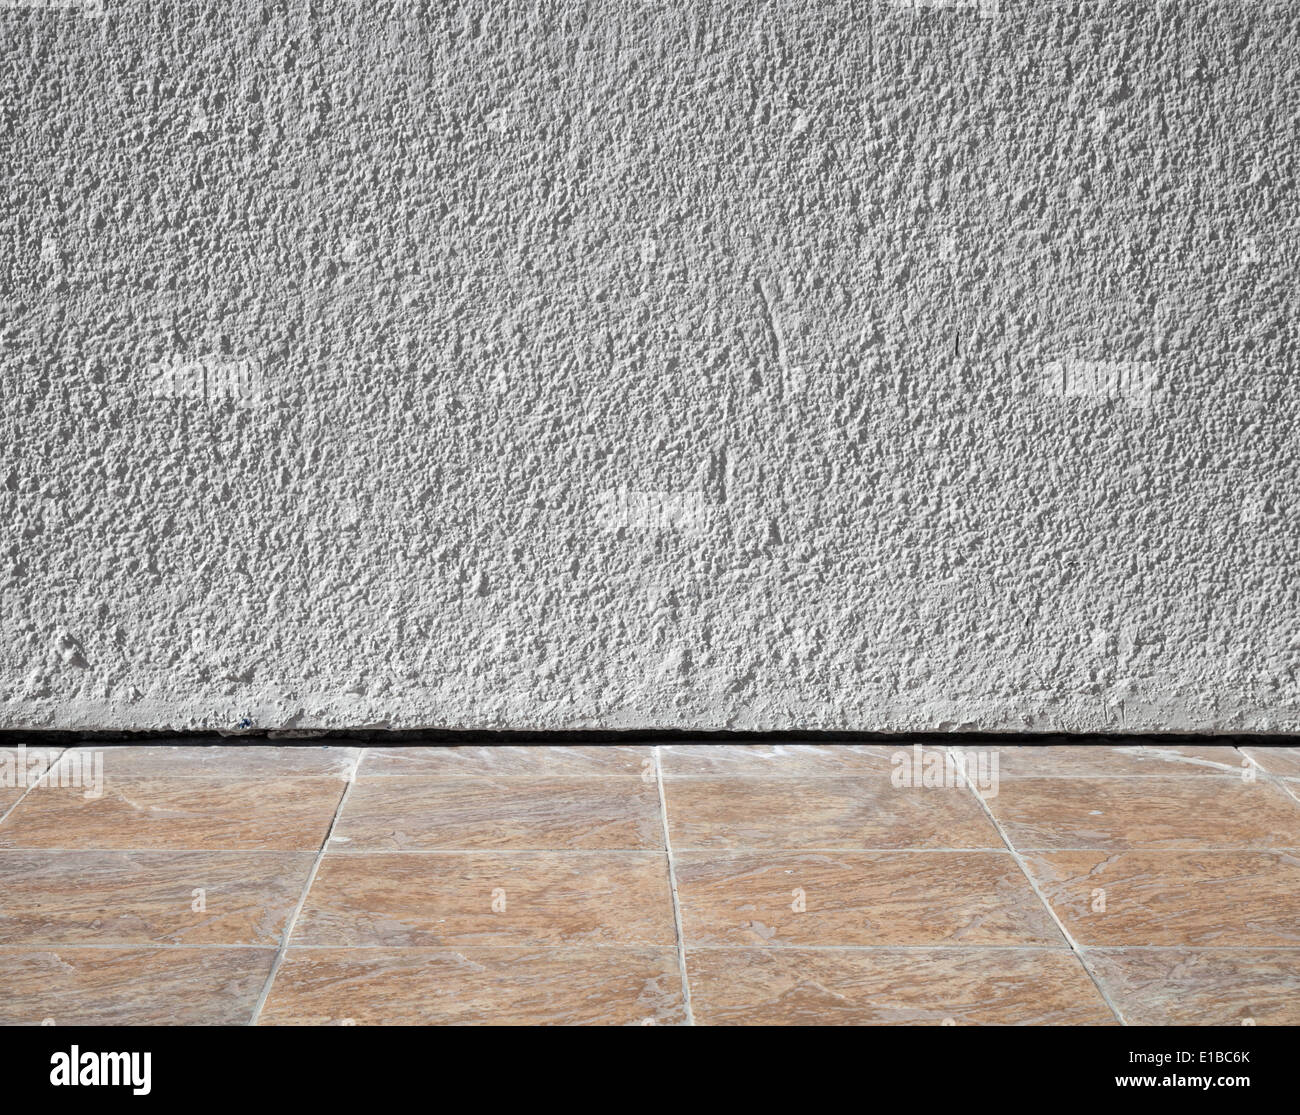 Wonderful Abstract Interior Background With Rough Stucco Wall And Tiling Floor